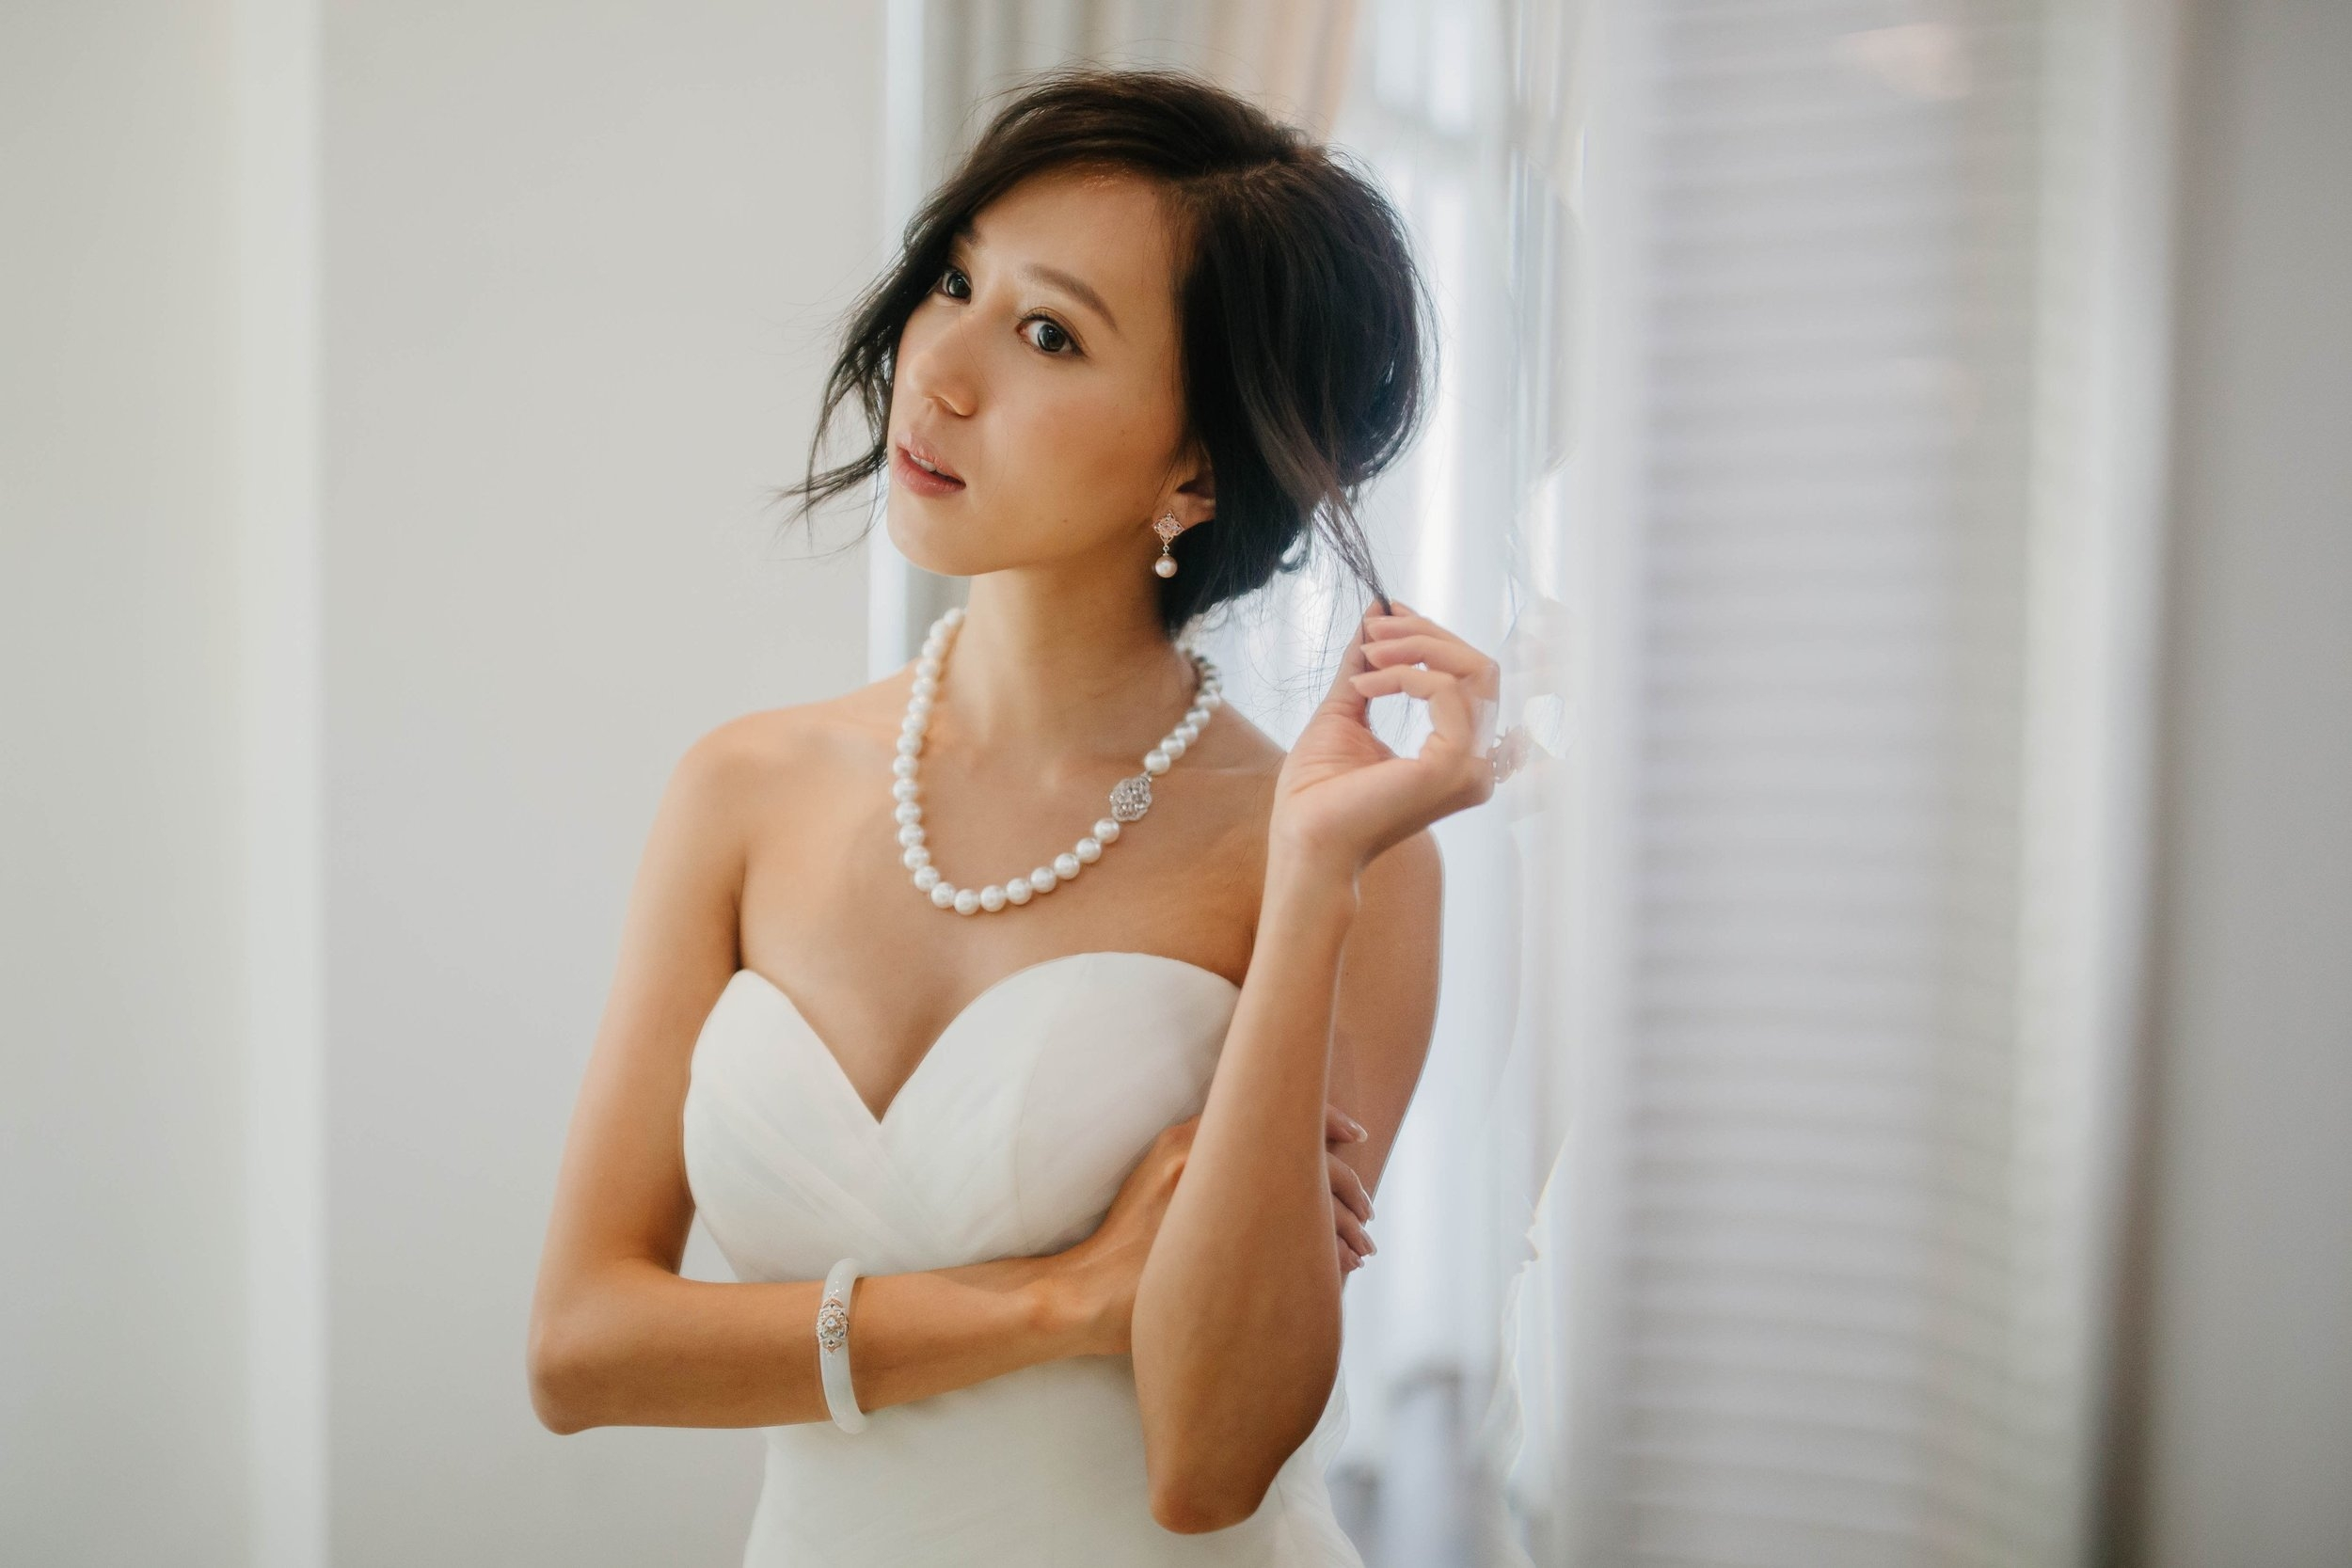 For the Glam Bride - Left,Melissa wears the lavish White South Sea Pearl Necklace with Peranakan Clasp, a piece that captures light perfectly, with its full string of lustrous pearls, moonstones and intricate metalwork inspired by tasteful Peranakan lacework. The South Sea pearls are set in White Gold, made for classy elegance. The look is completed with the Bamboo Marquise Ringin iridescent White Quartz and the captivating Peranakan Lace Jade Bangle.